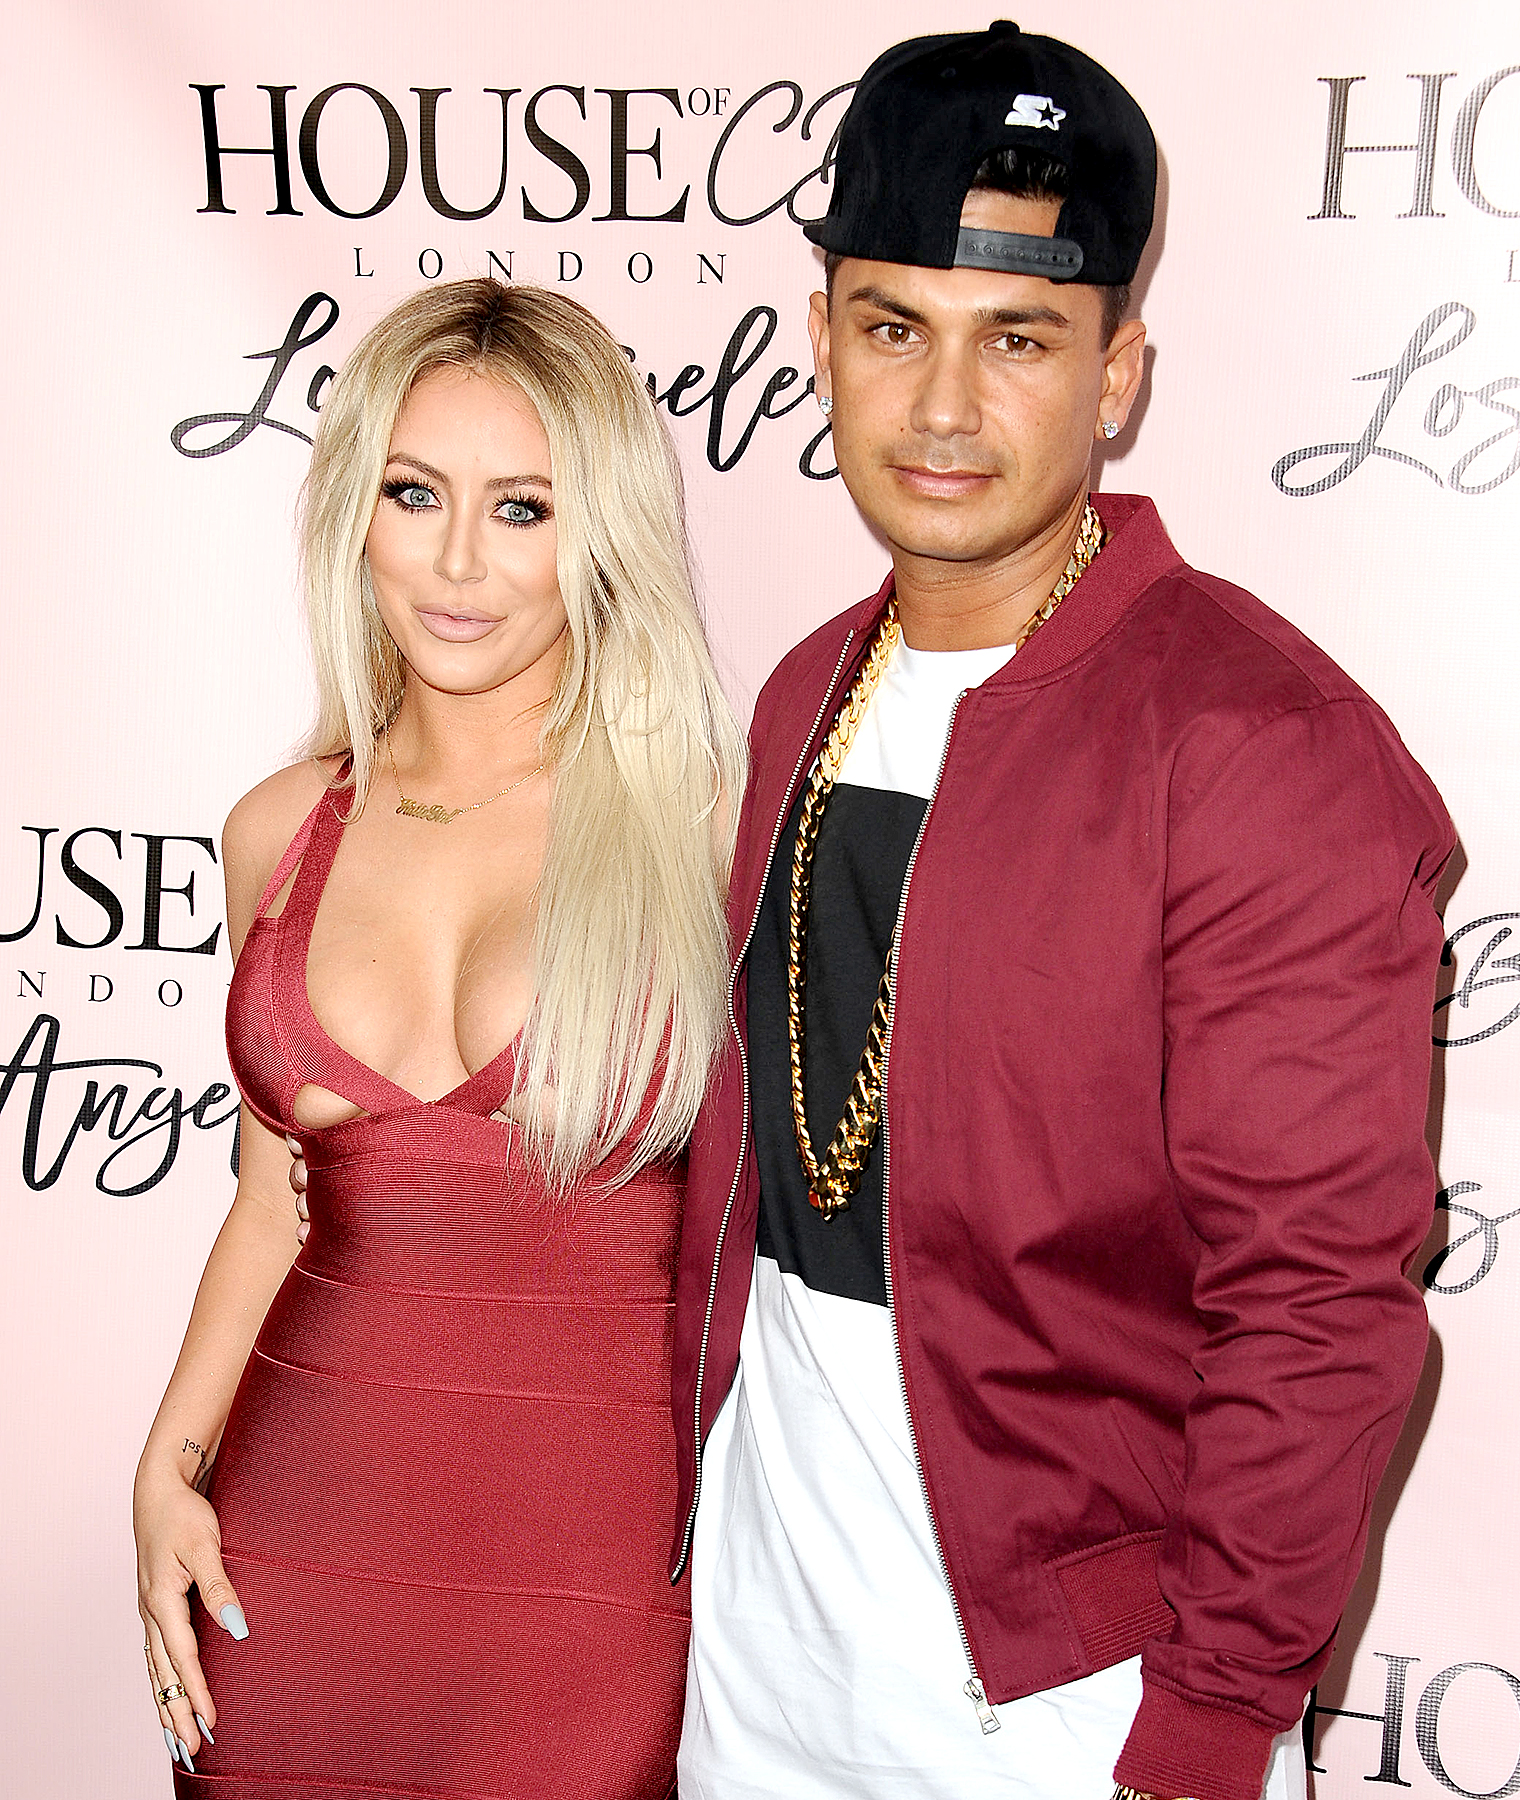 pauly d dating history